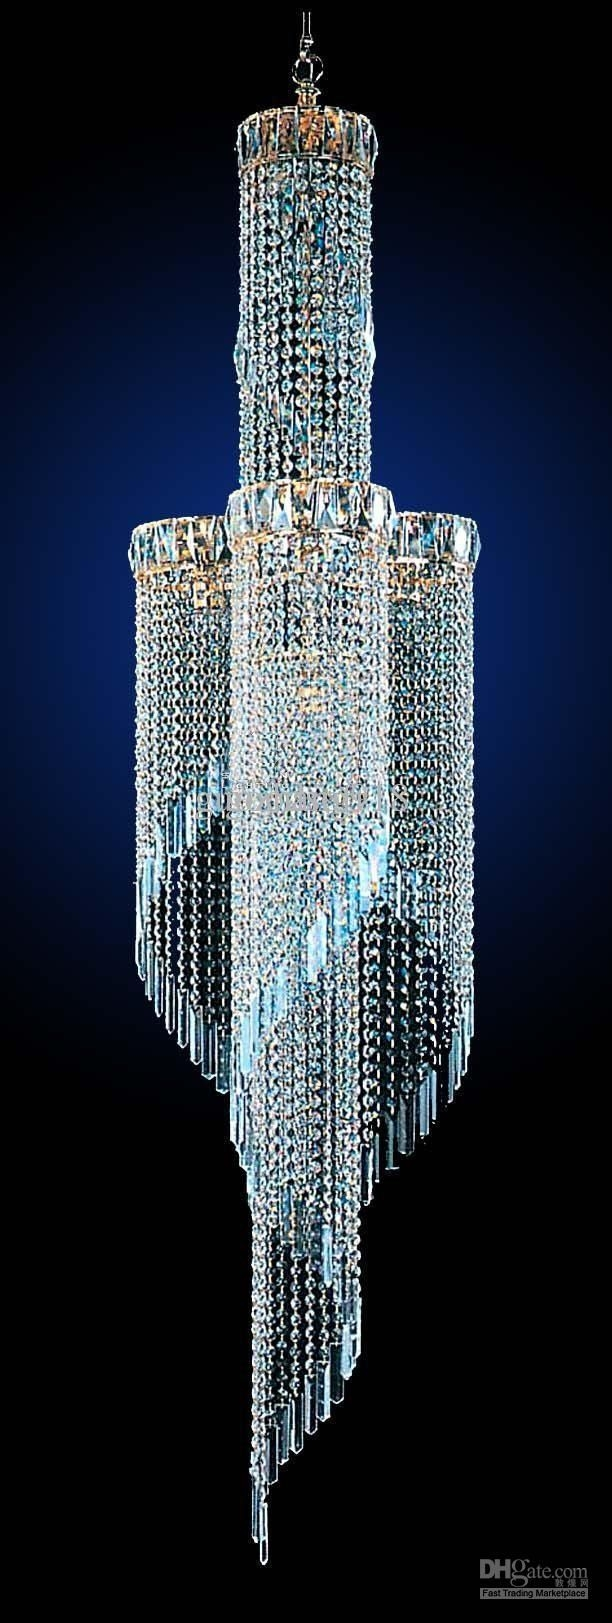 Best 20 Crystal Chandeliers Ideas On Pinterest Elegant Within Sparkly Chandeliers (Image 4 of 25)